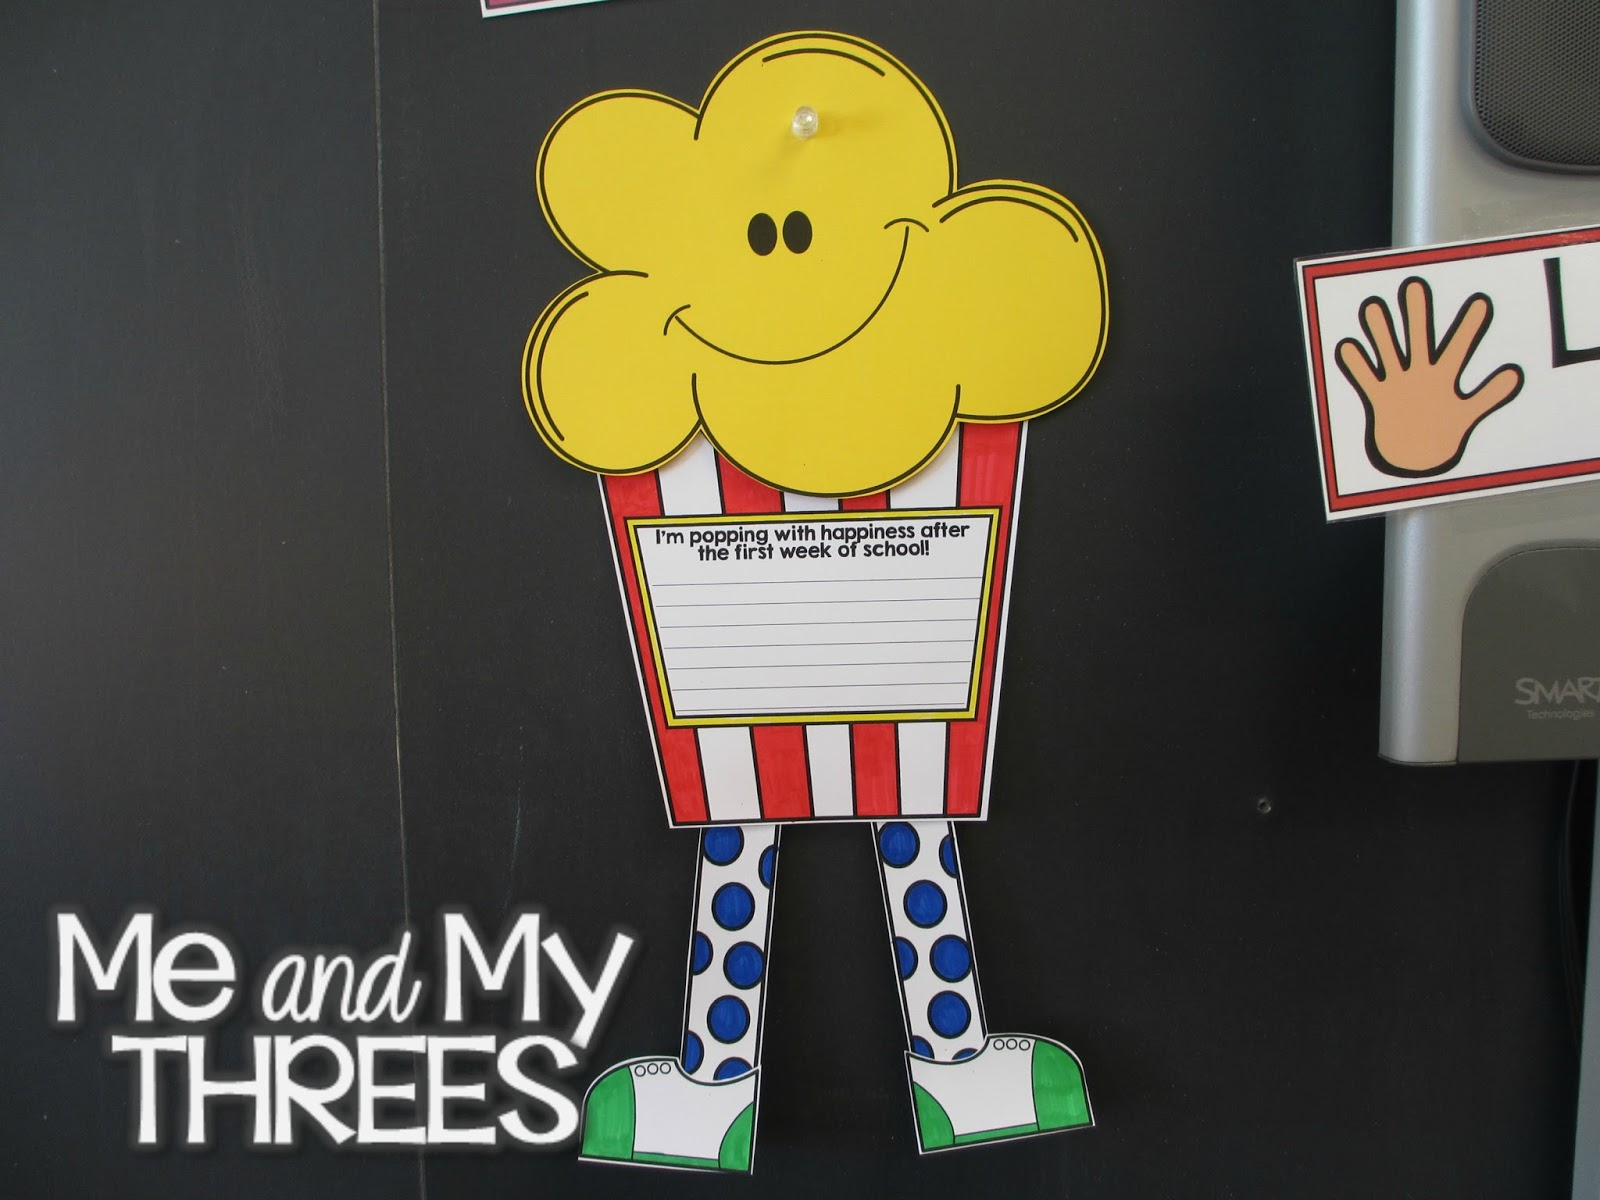 Me And My Threes: Clap along if you feel like a room without